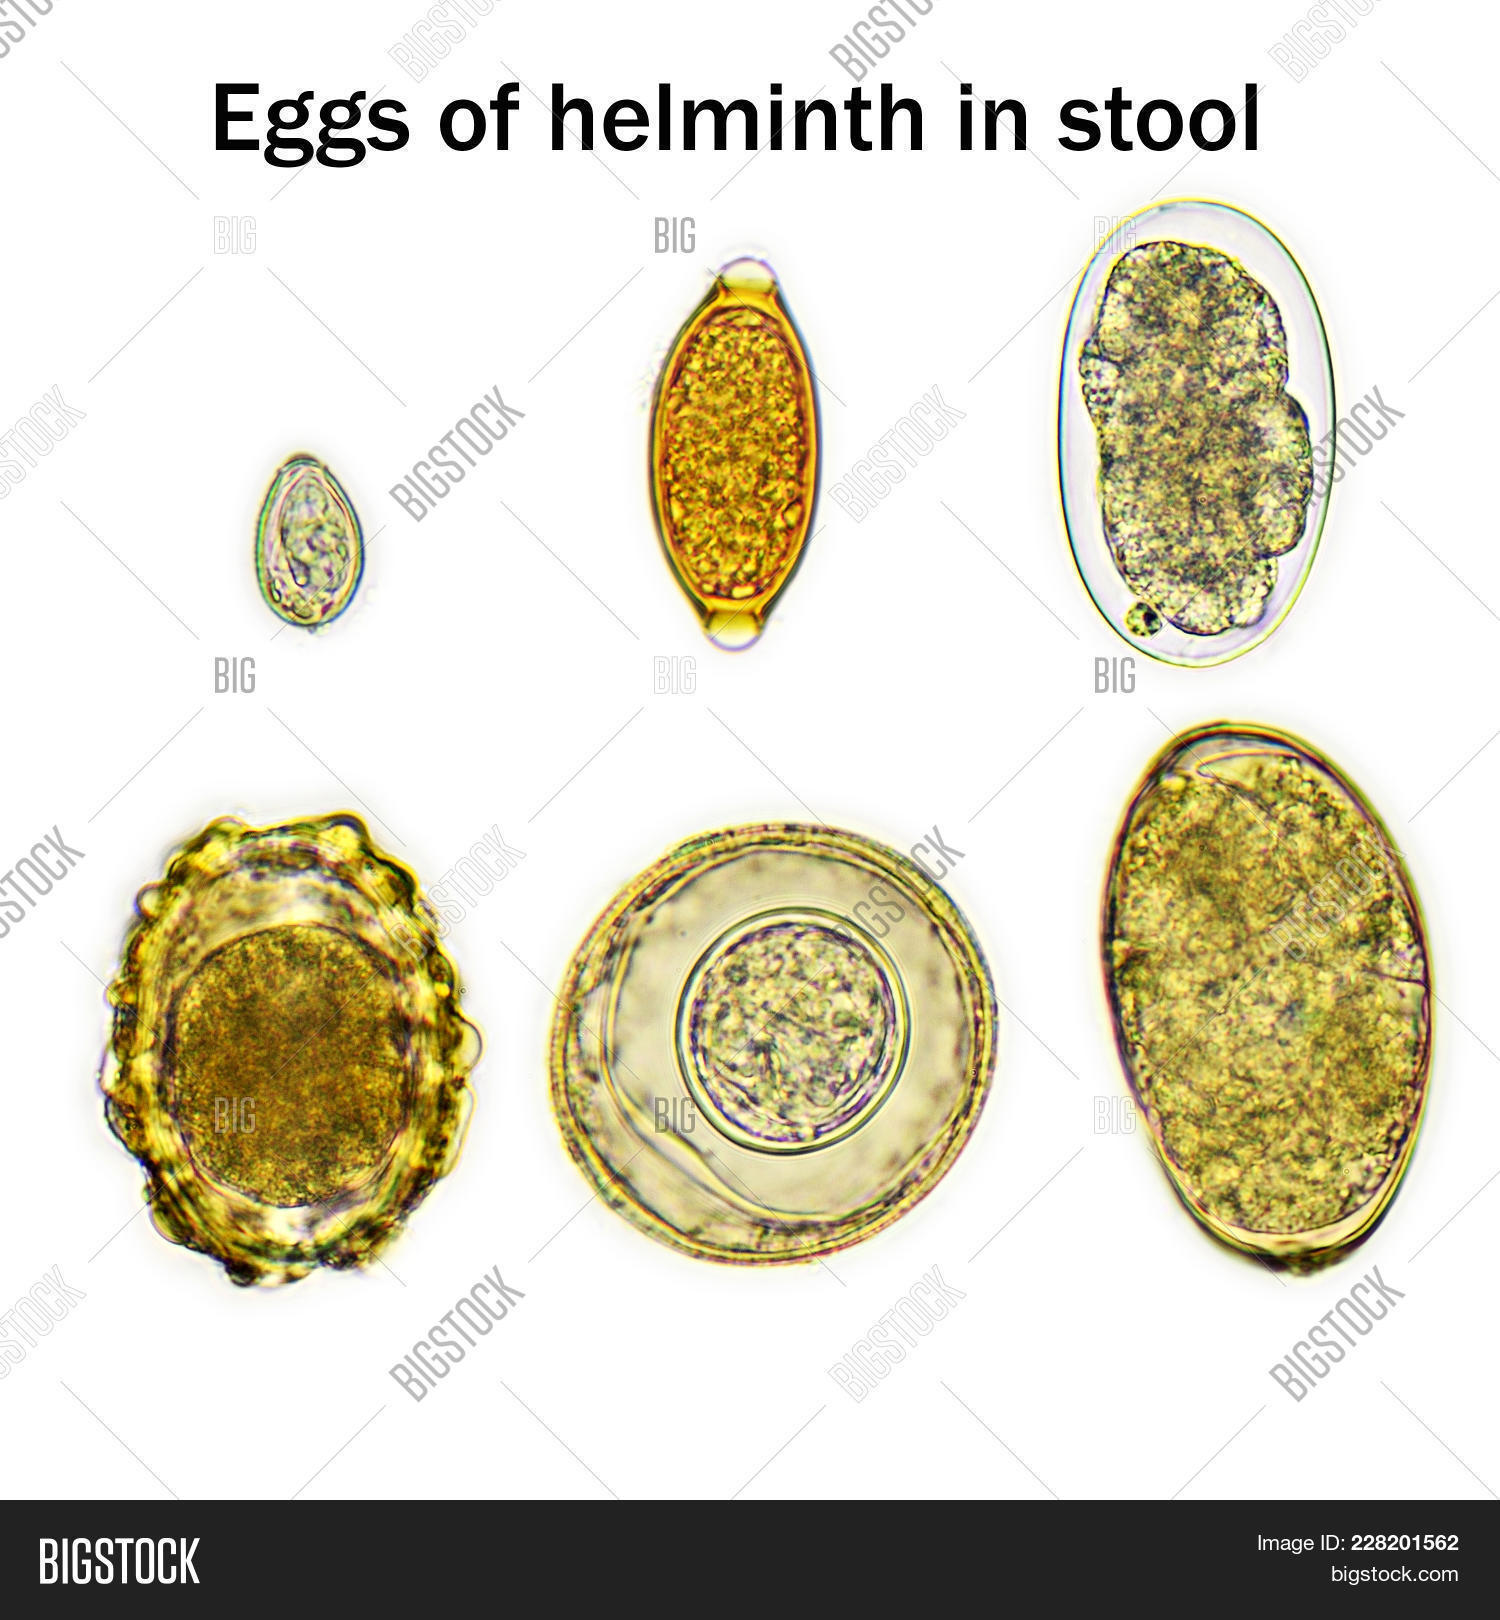 Mixed Helminths Stool Image & Photo (Free Trial)